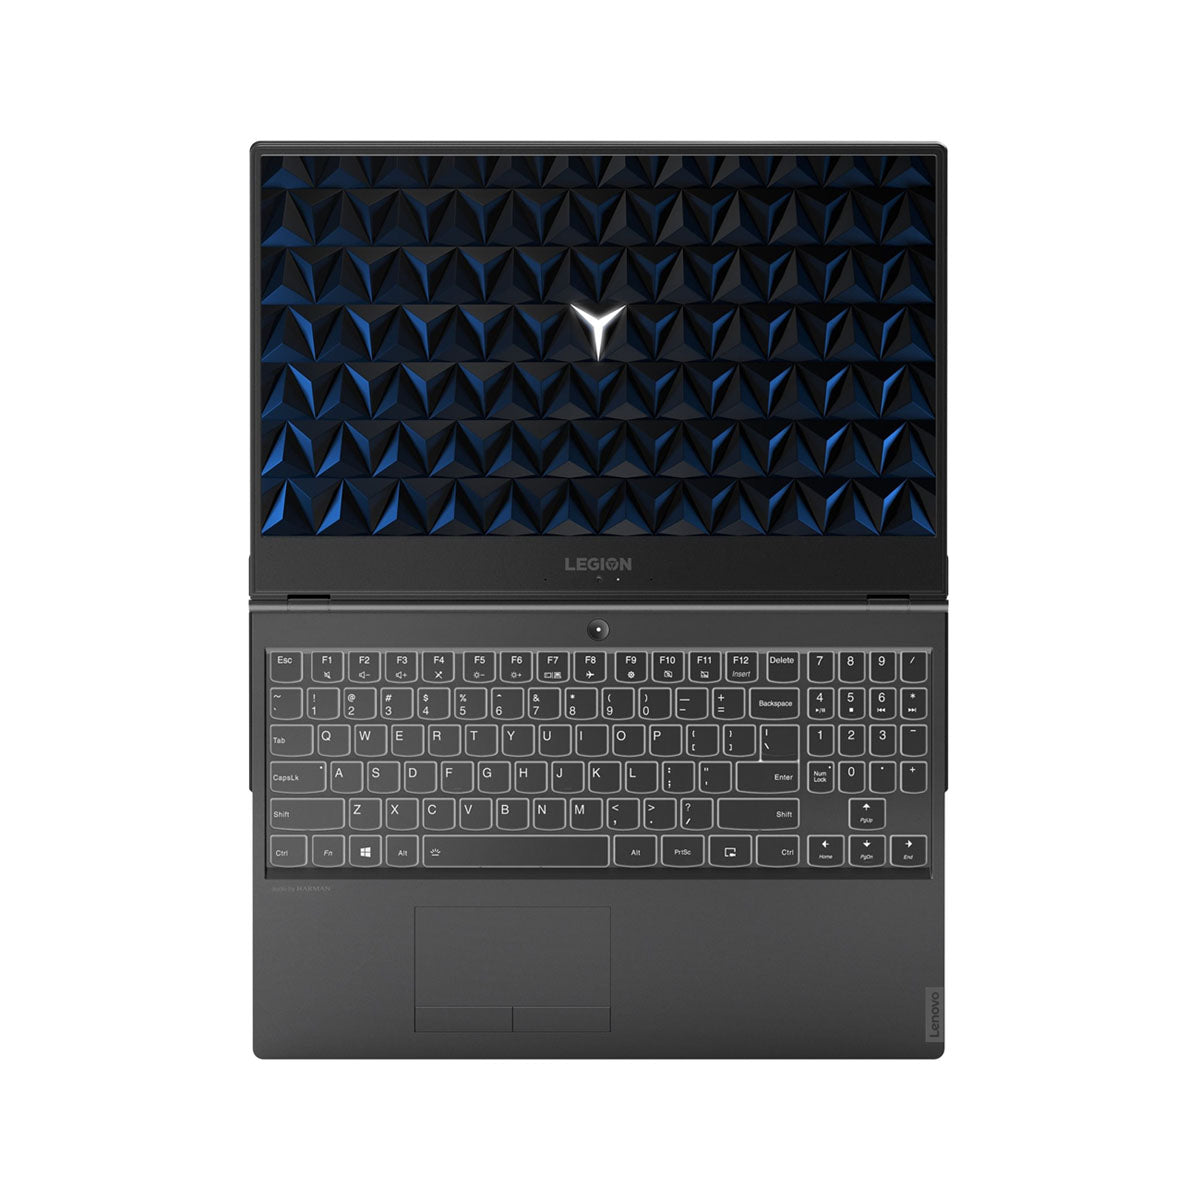 Lenovo Legion Y540 Gaming Laptop 15.6'' IPS FHD, Intel Core i7-9750H, GTX 1650 4GB GPU, 8GB RAM, 1TB HDD + 256GB SSD, Windows 10, English Backlit Keyboard, Raven Black, 1 Year Warranty